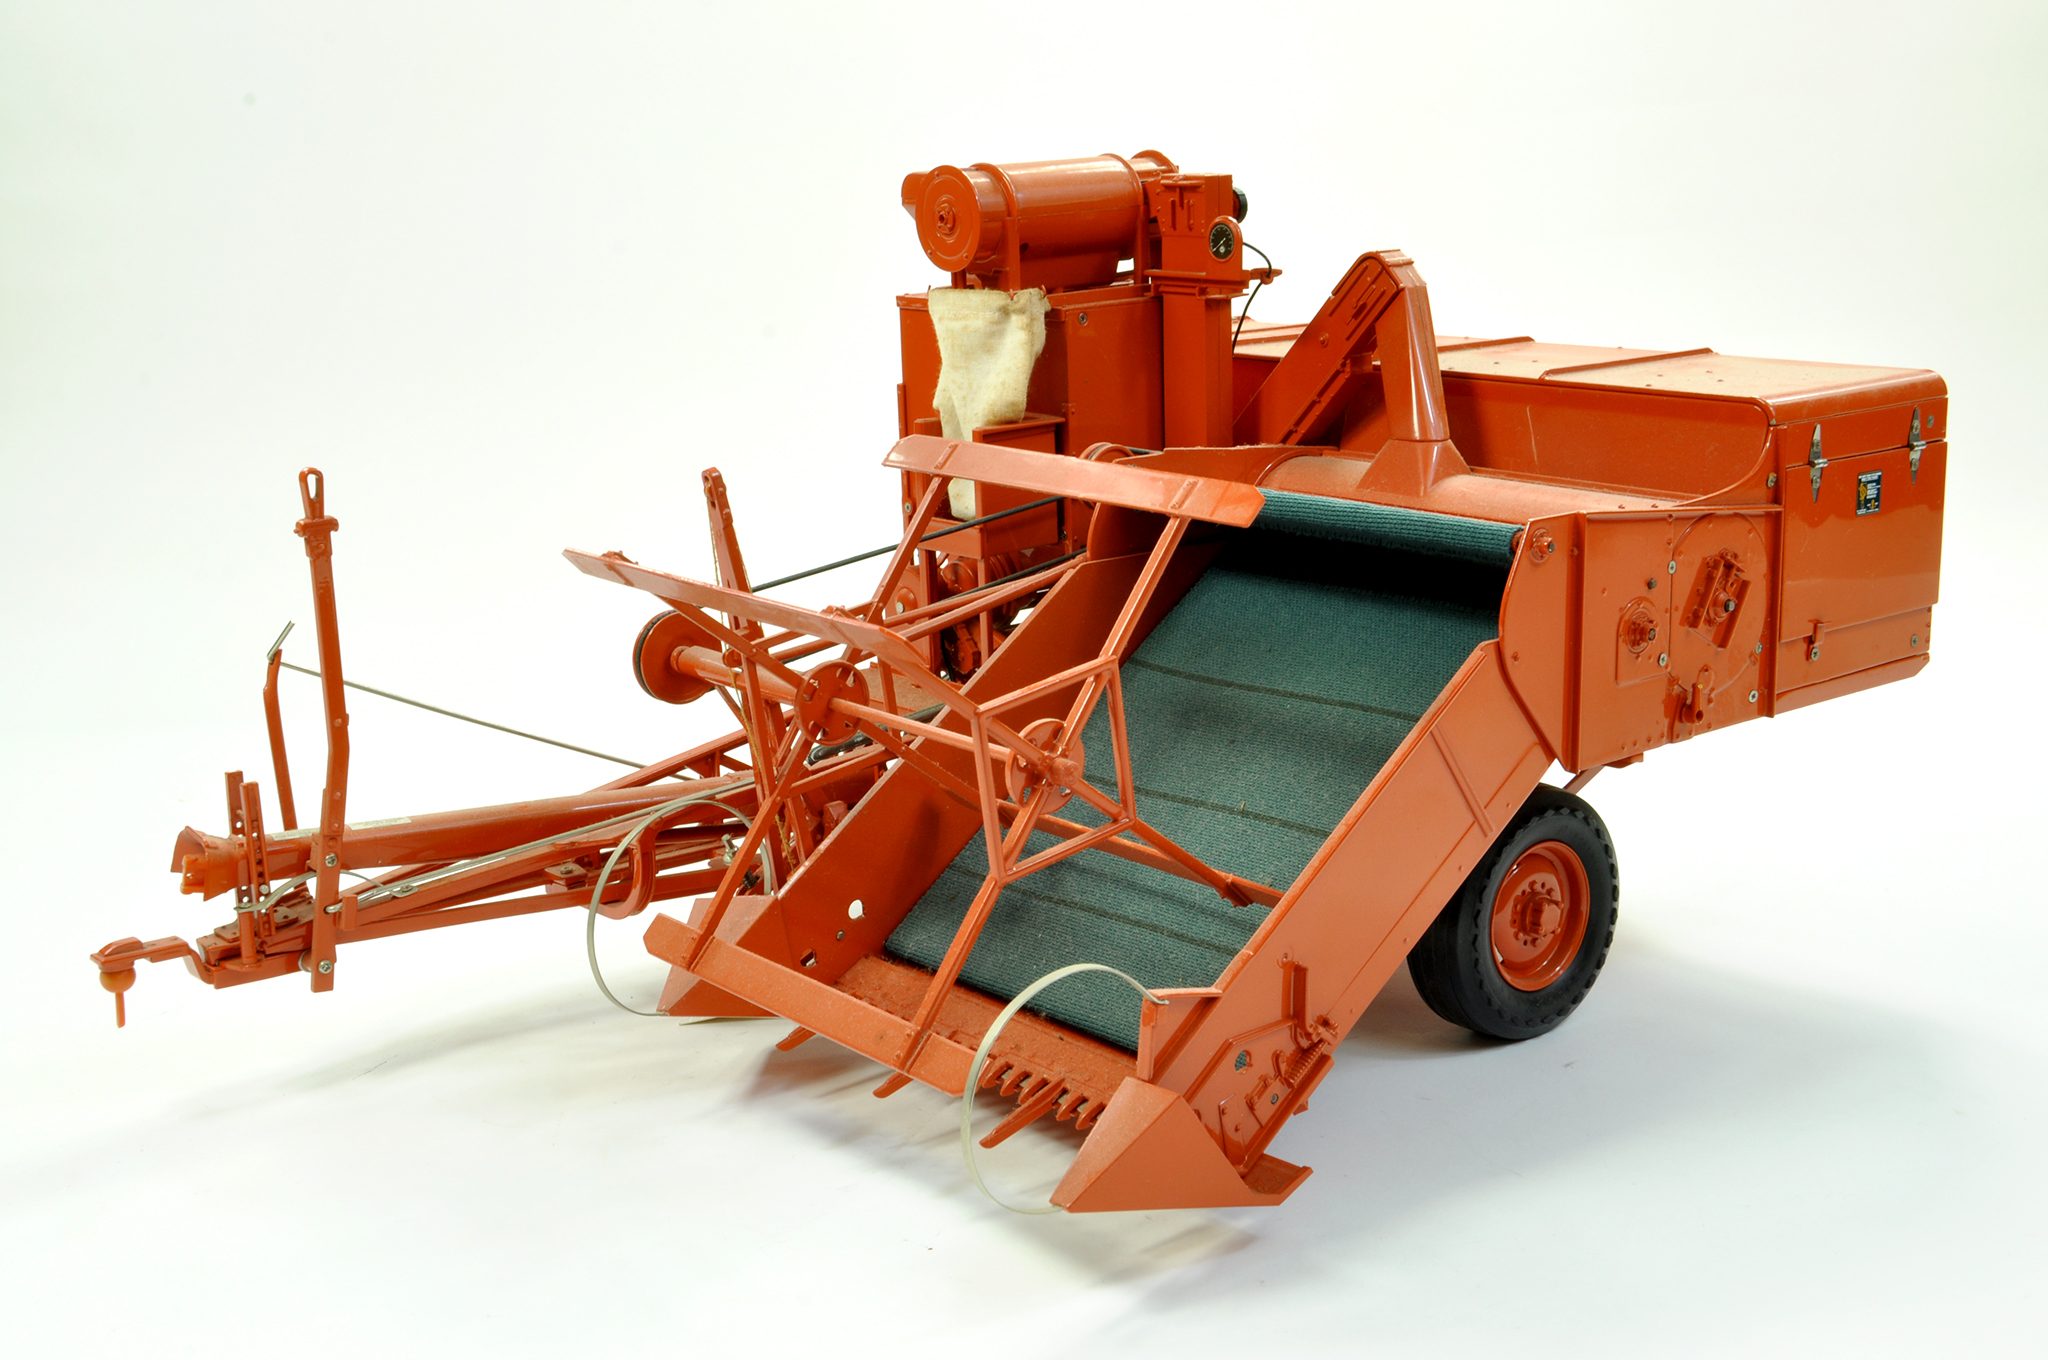 Lot 46 - Franklin Mint 1/12 Precision Farm issue comprising Allis Chalmers Type 60A All Crop Combine